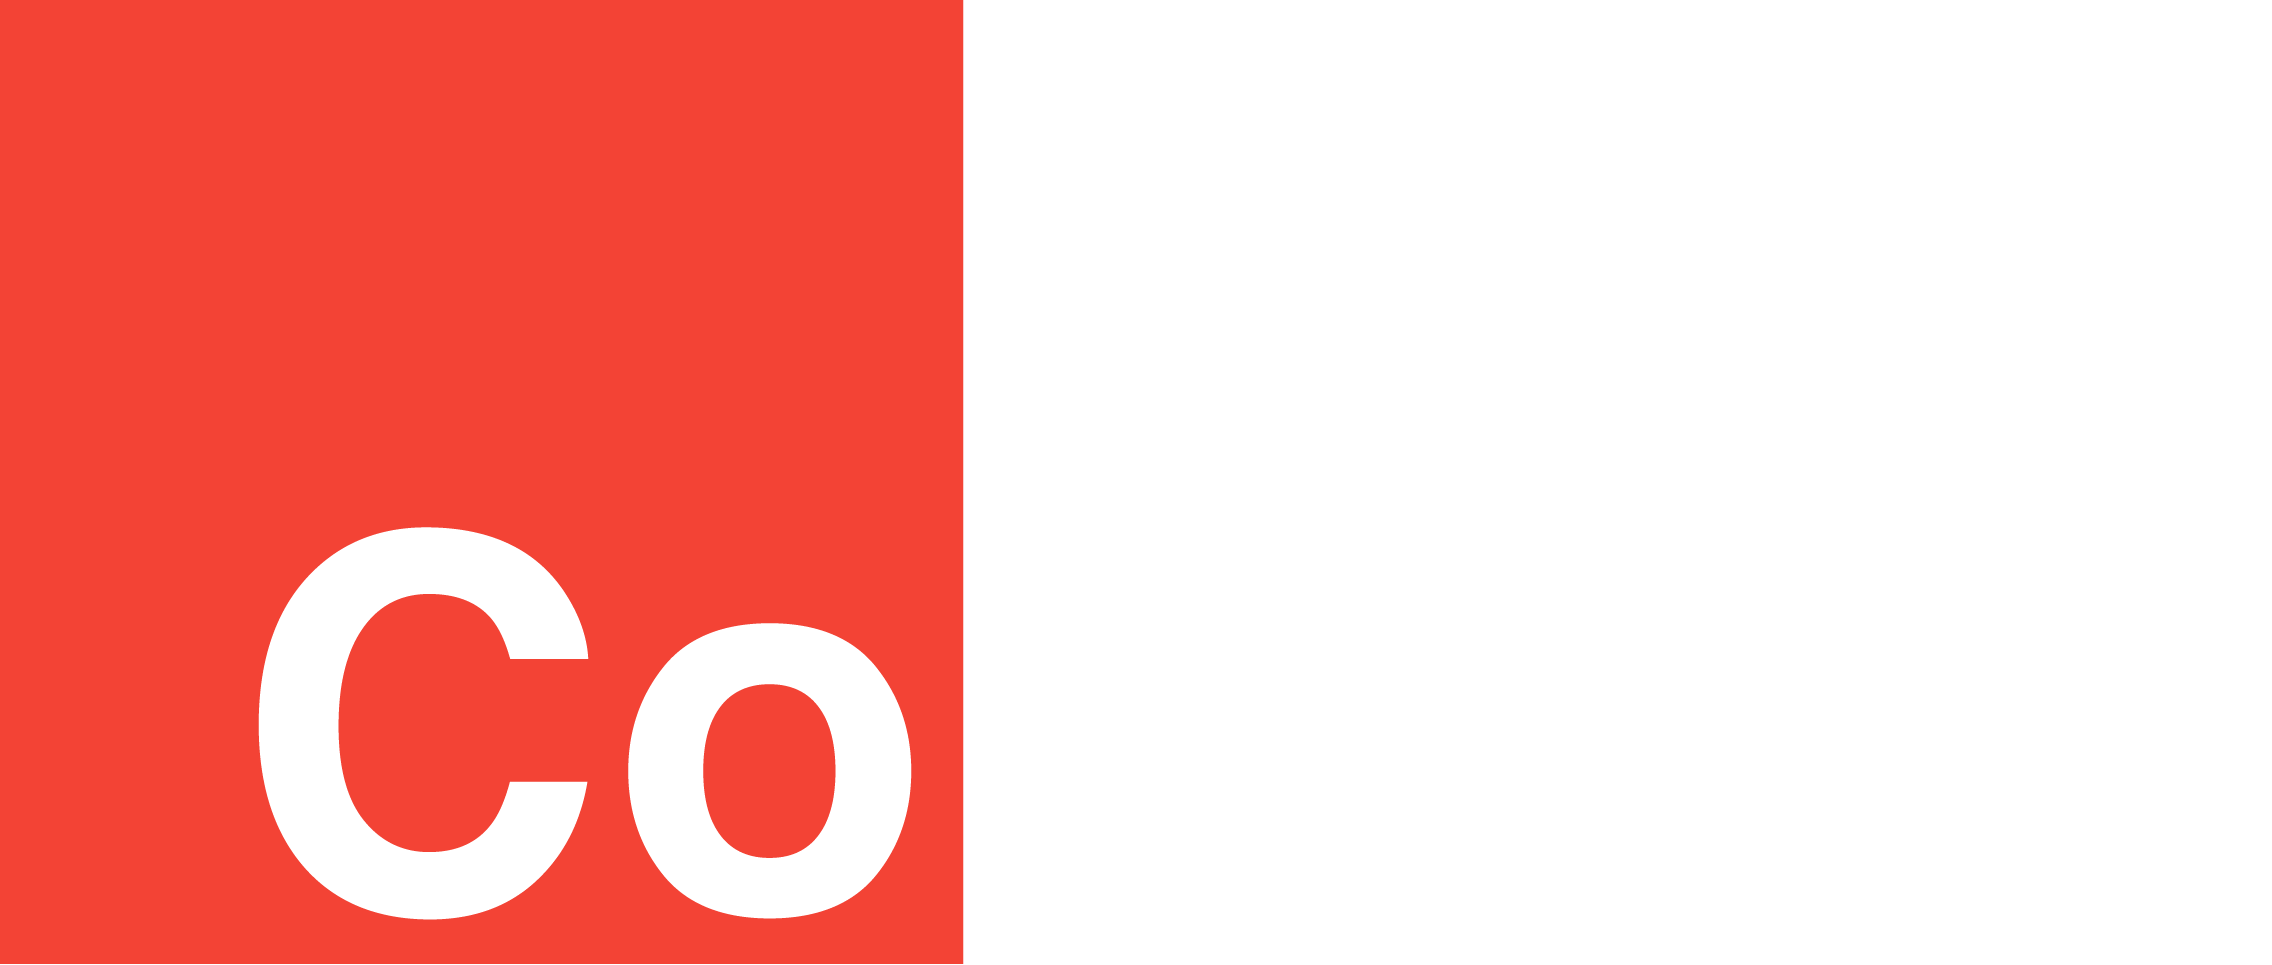 cropped-CoLabs-logo-06-1-1.png